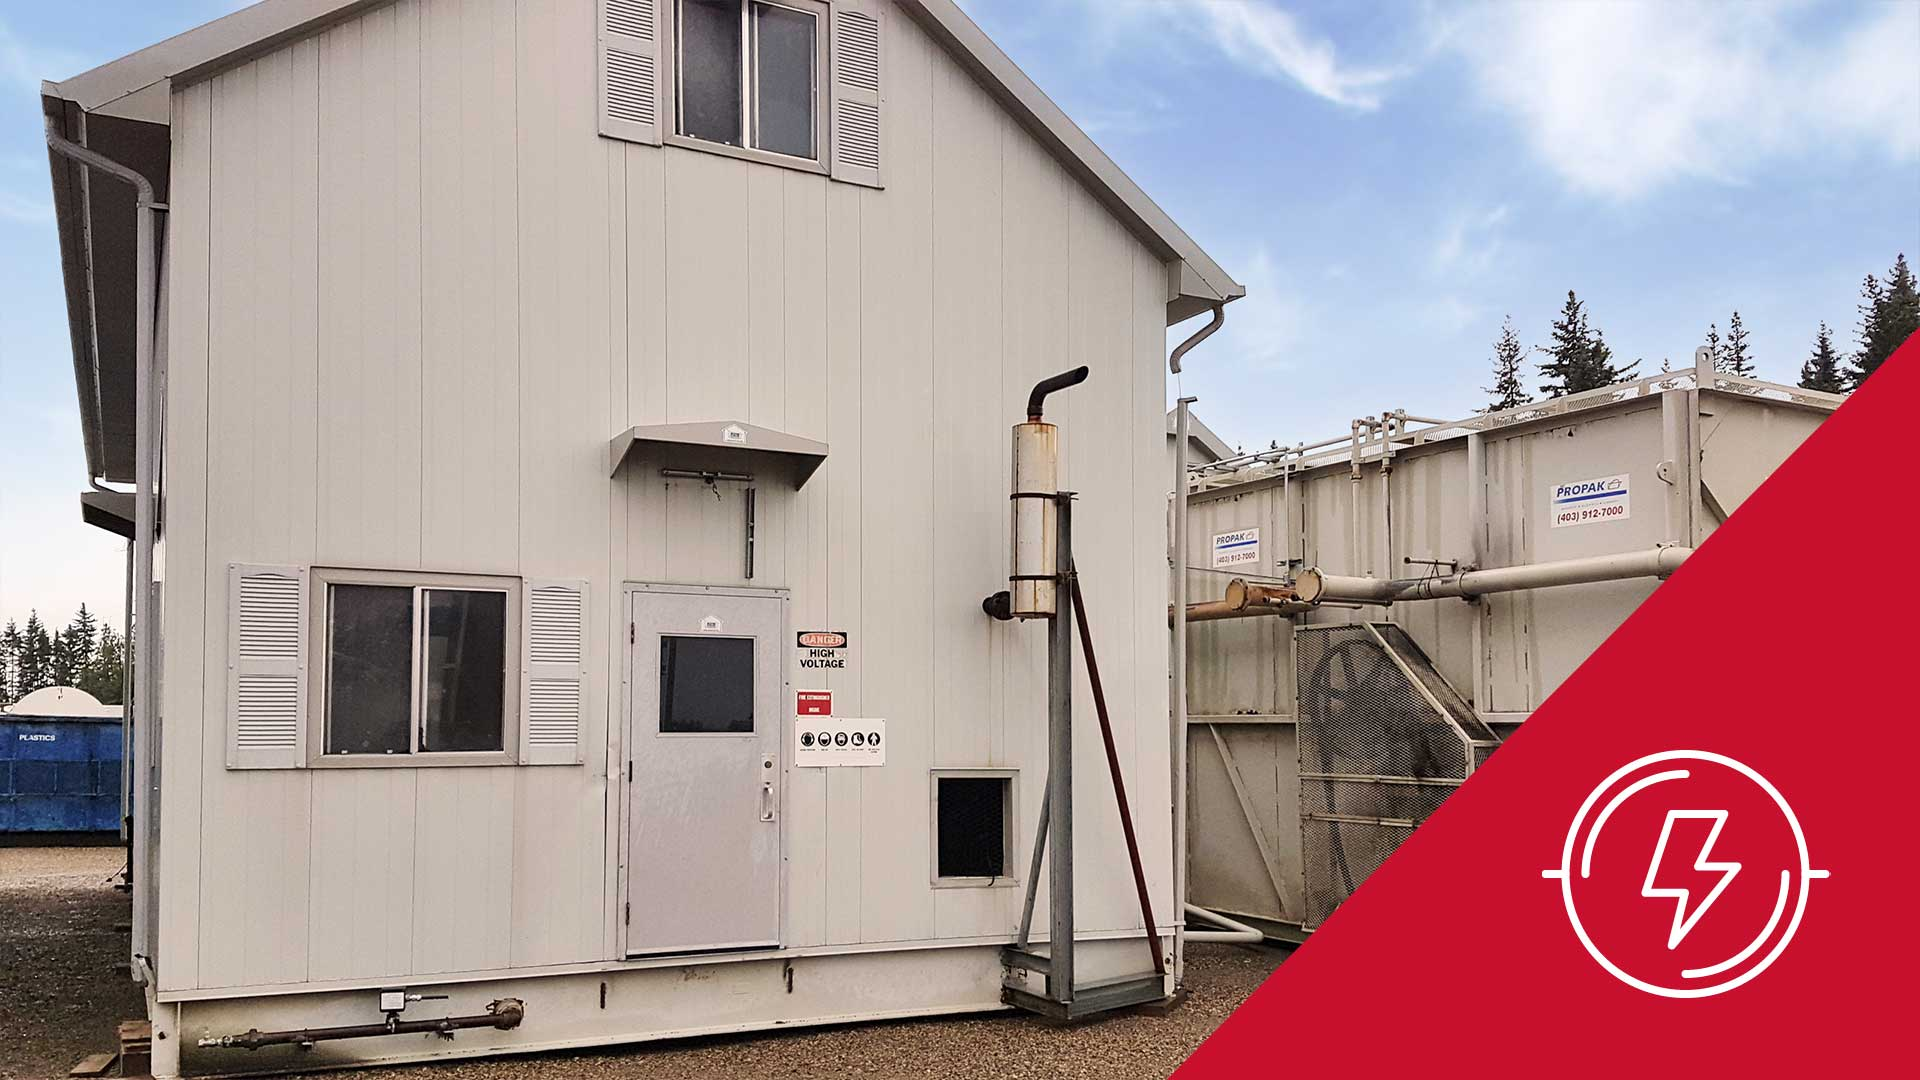 For Sale: 1 MW Generator Natural Gas Powered For Sale - Fixed-cost Turnkey Solution 1000 kW Prime Power